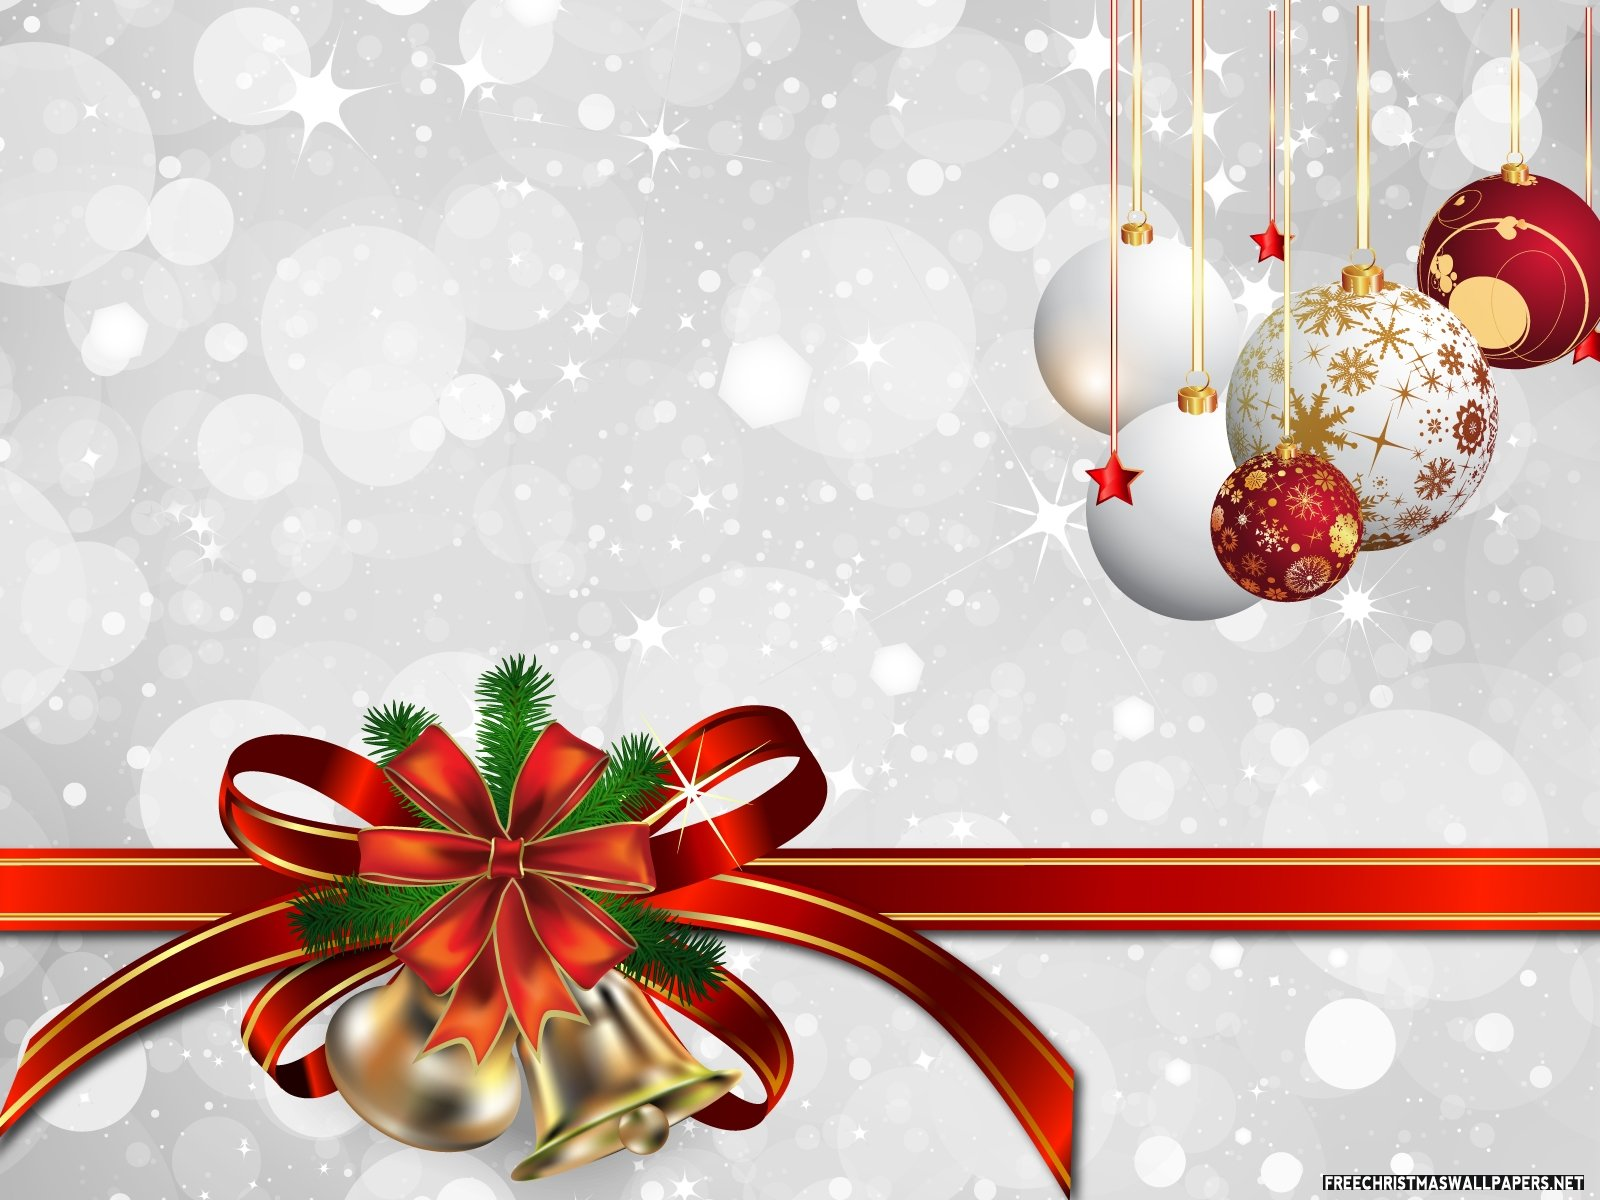 Christmas images Christmas HD wallpaper and background 1600x1200